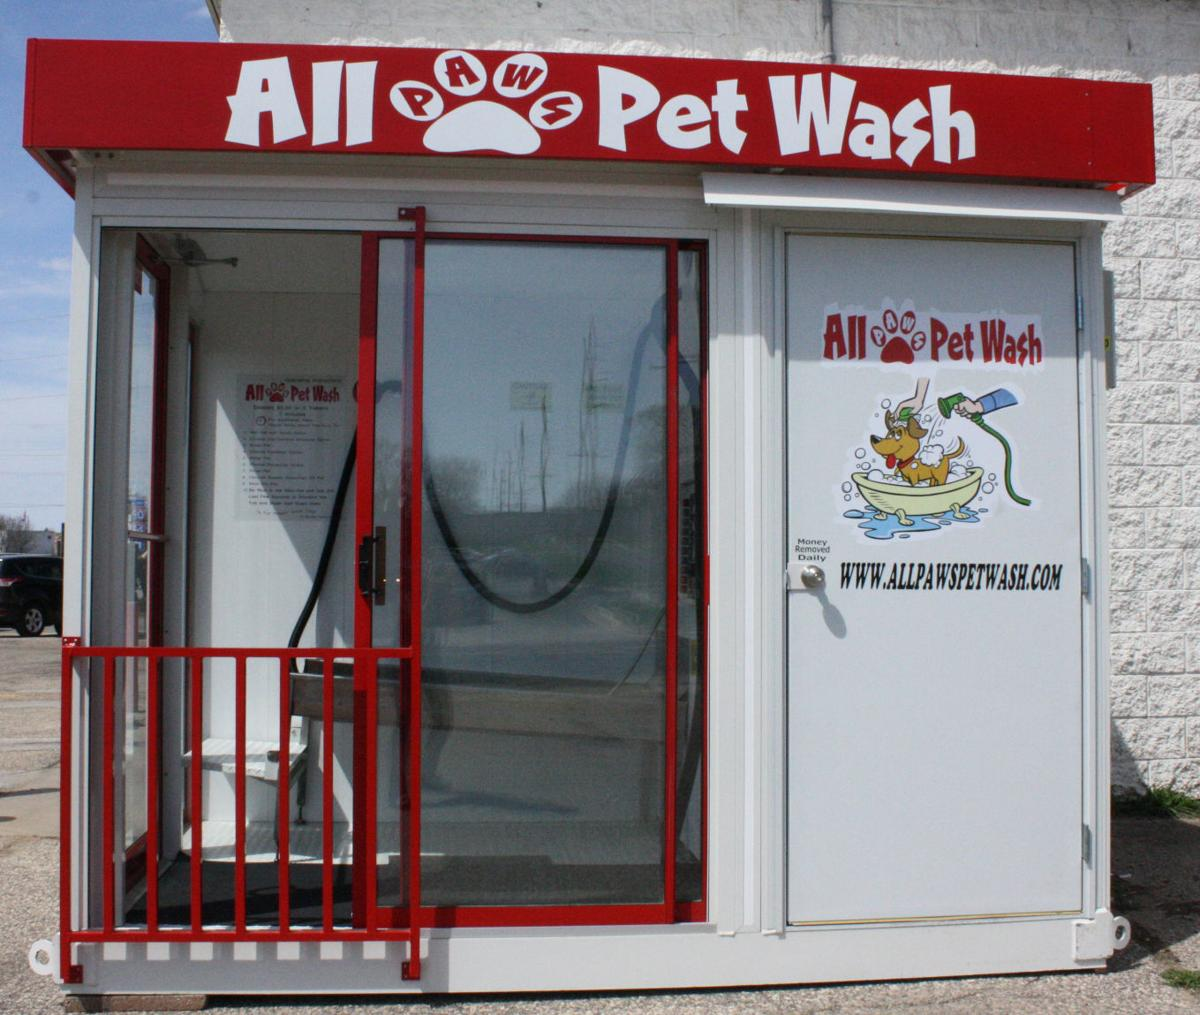 Self service pet wash opens in mauston regional news wiscnews self service pet wash opens in mauston solutioingenieria Image collections